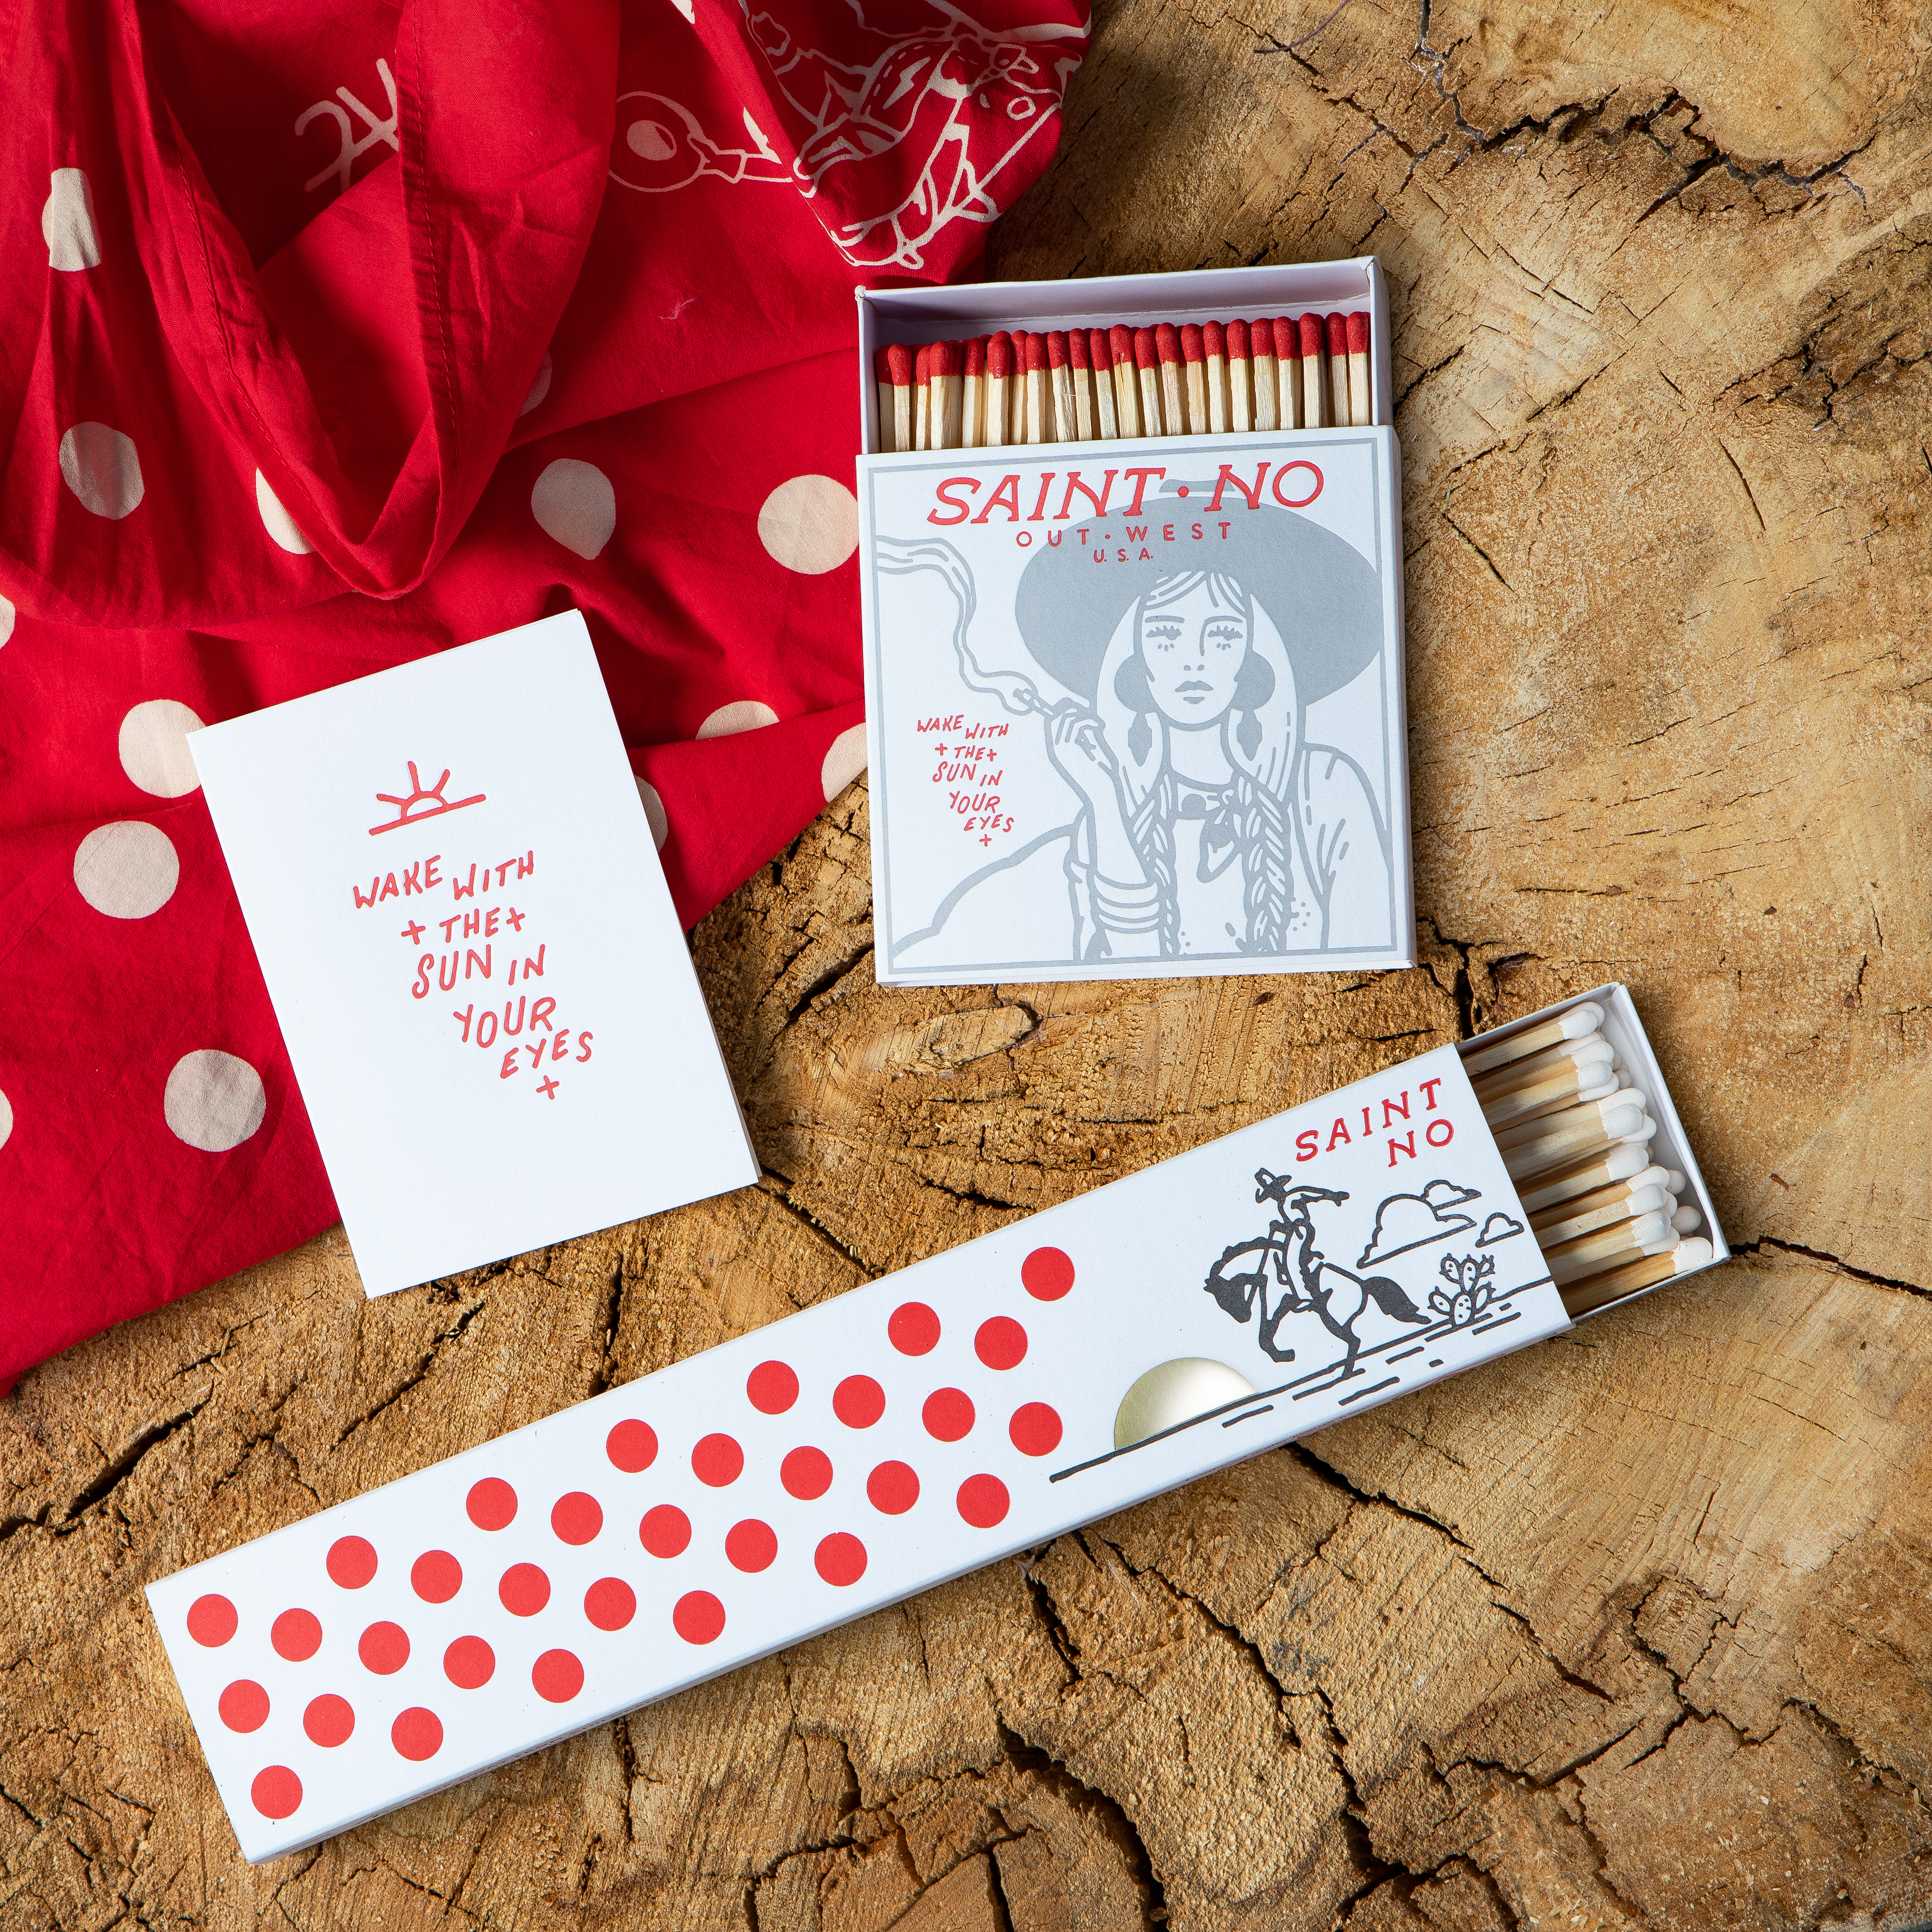 Above: Some Saint No designs on letterpressed cards and matches from Archivist Gallery.